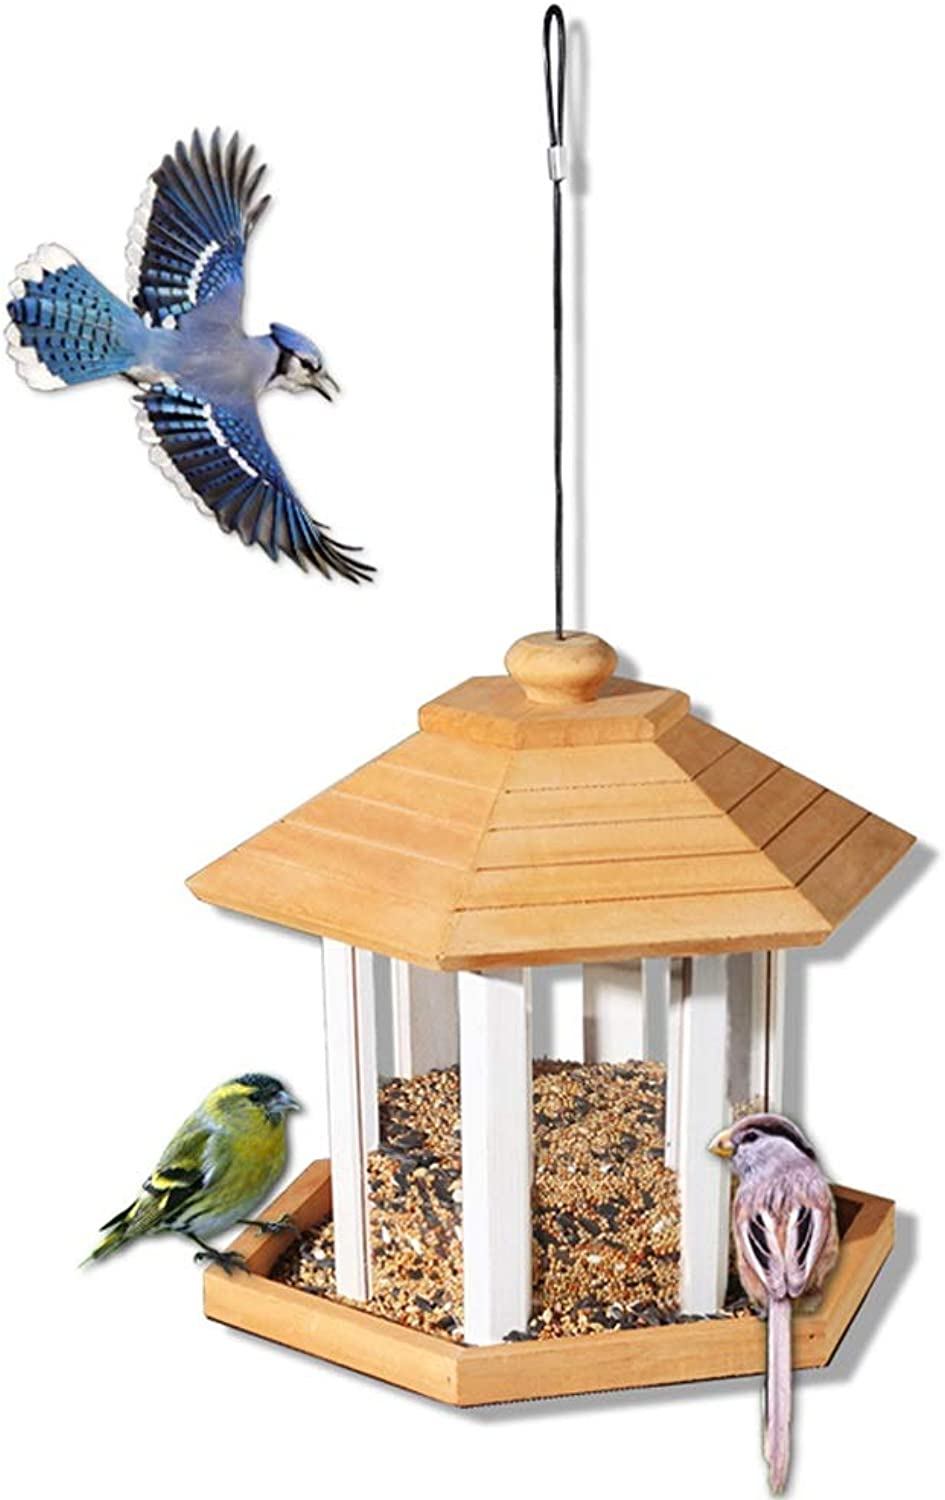 MXueei ZfgG Hanging Wildbird Table Feeder, Wild Bird Wooden Seed Feeding Station